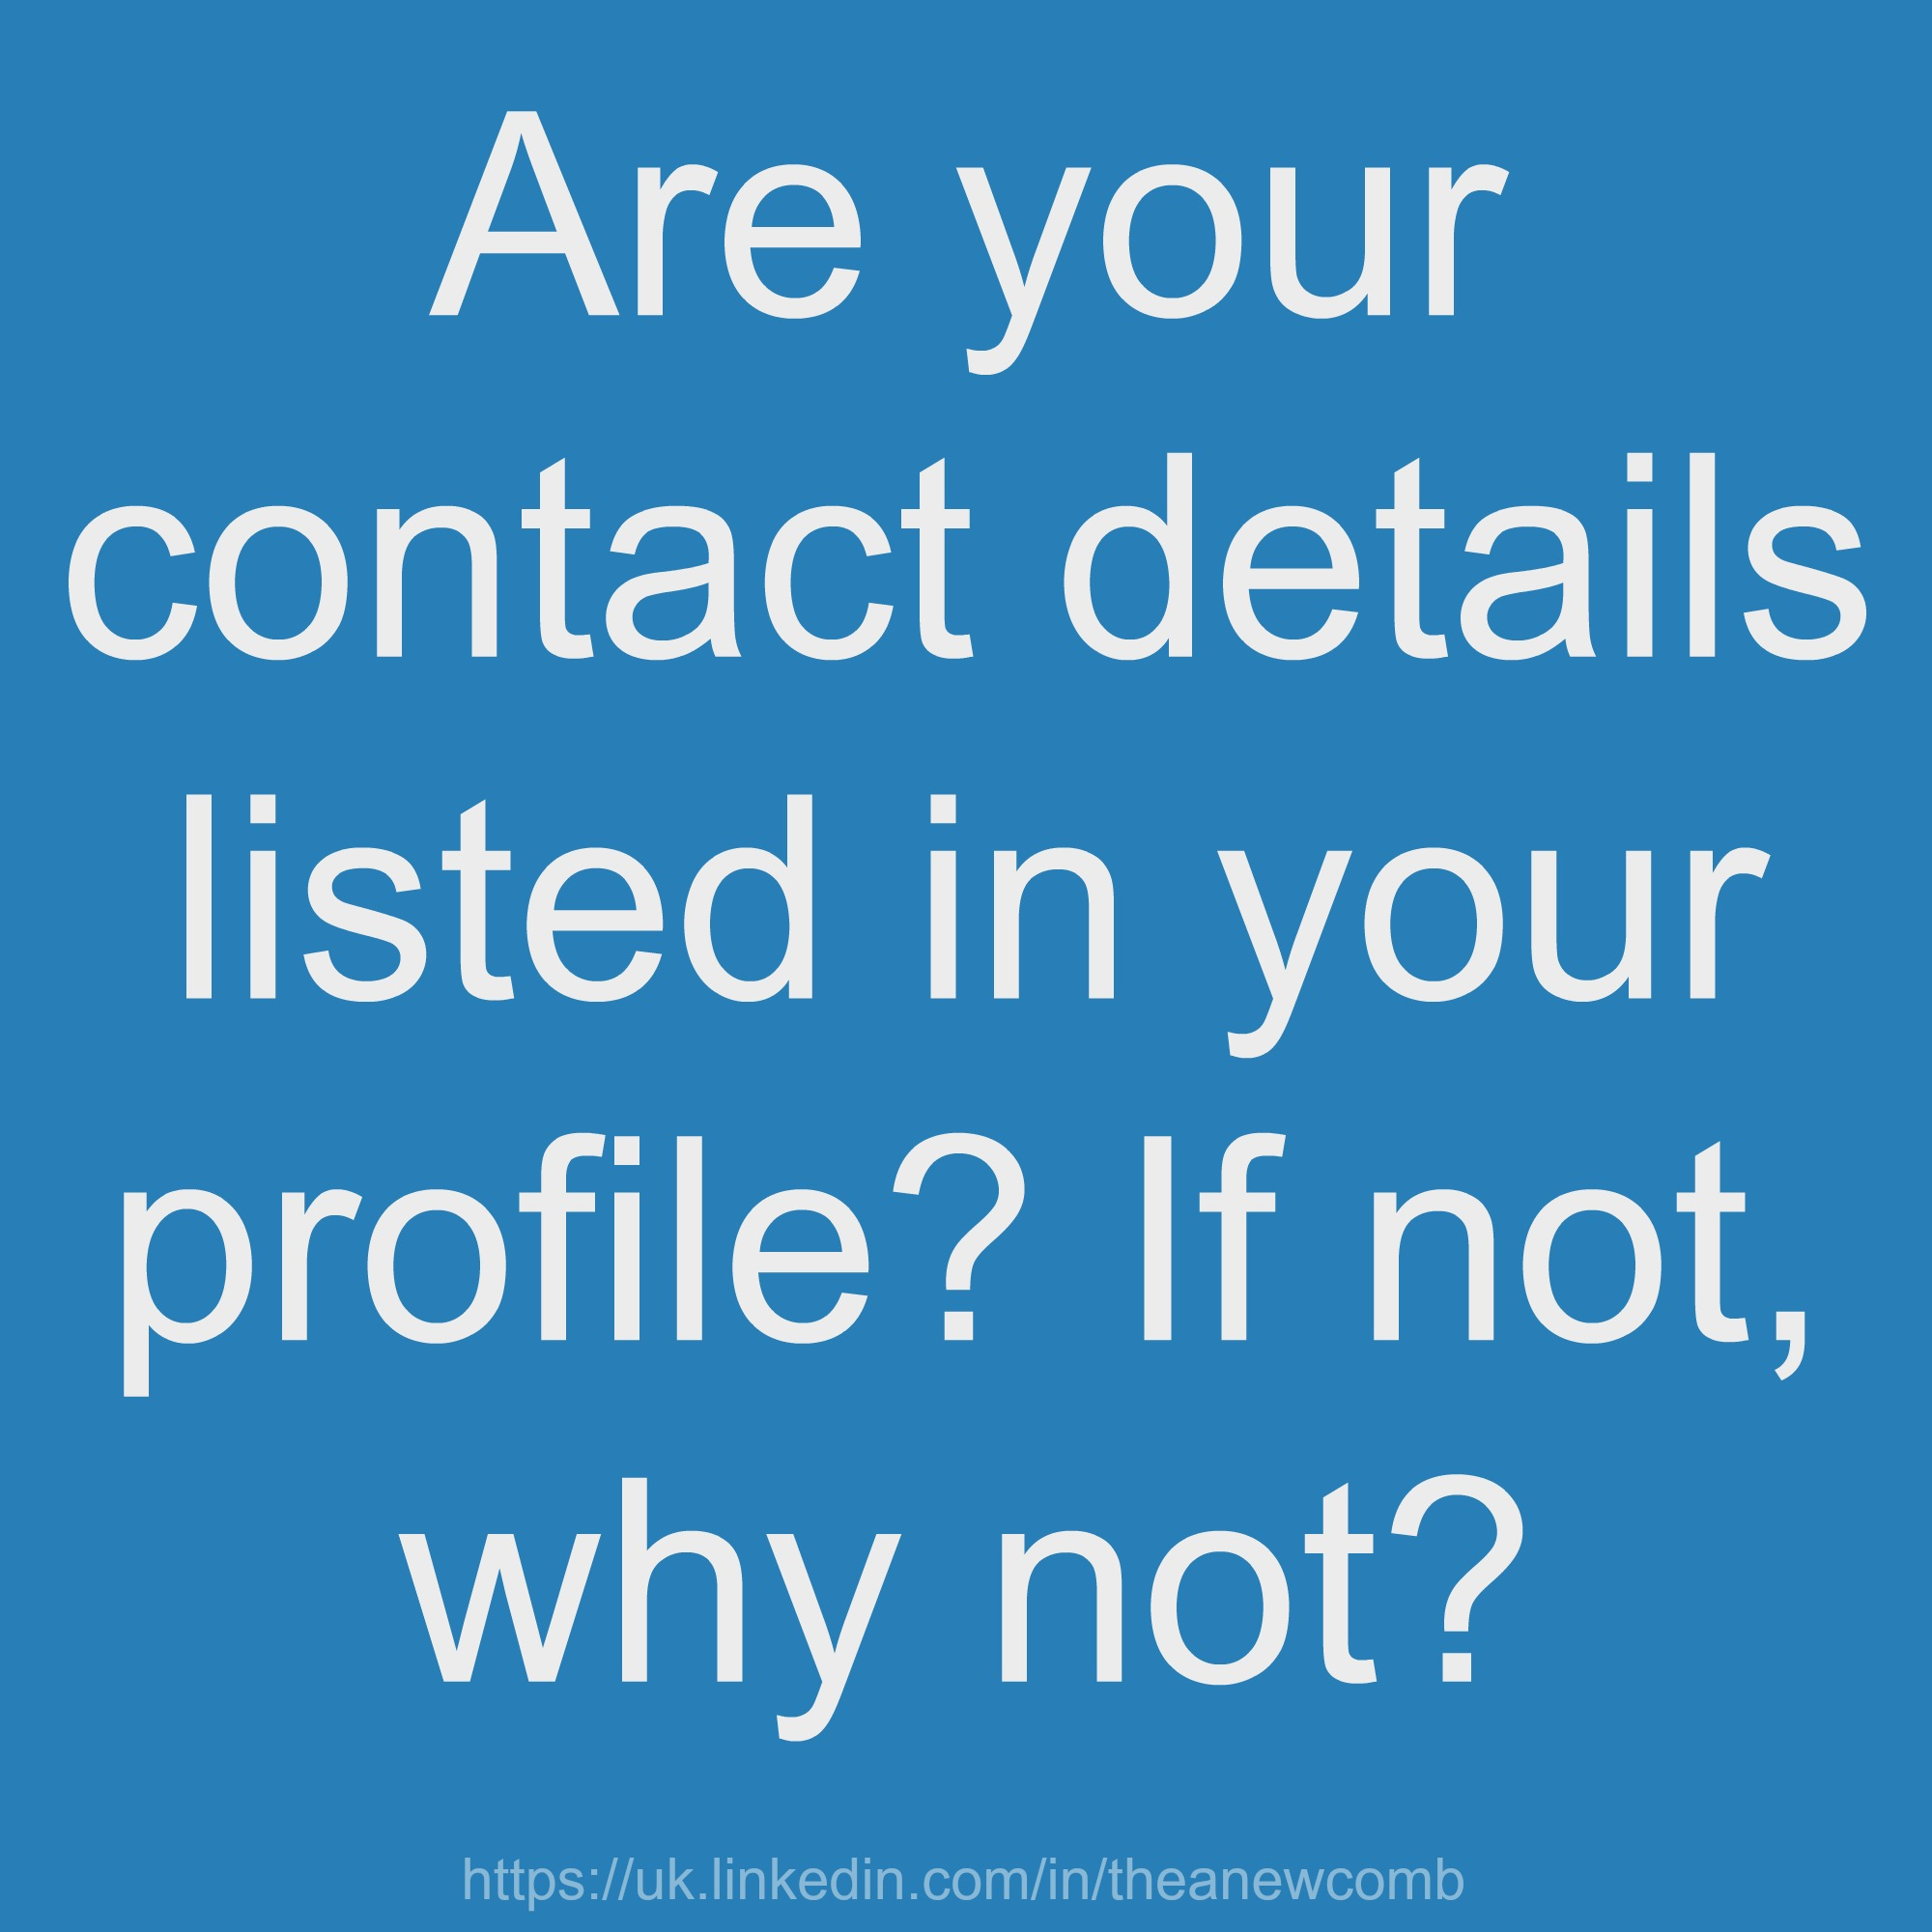 Are you details on Linkedin?